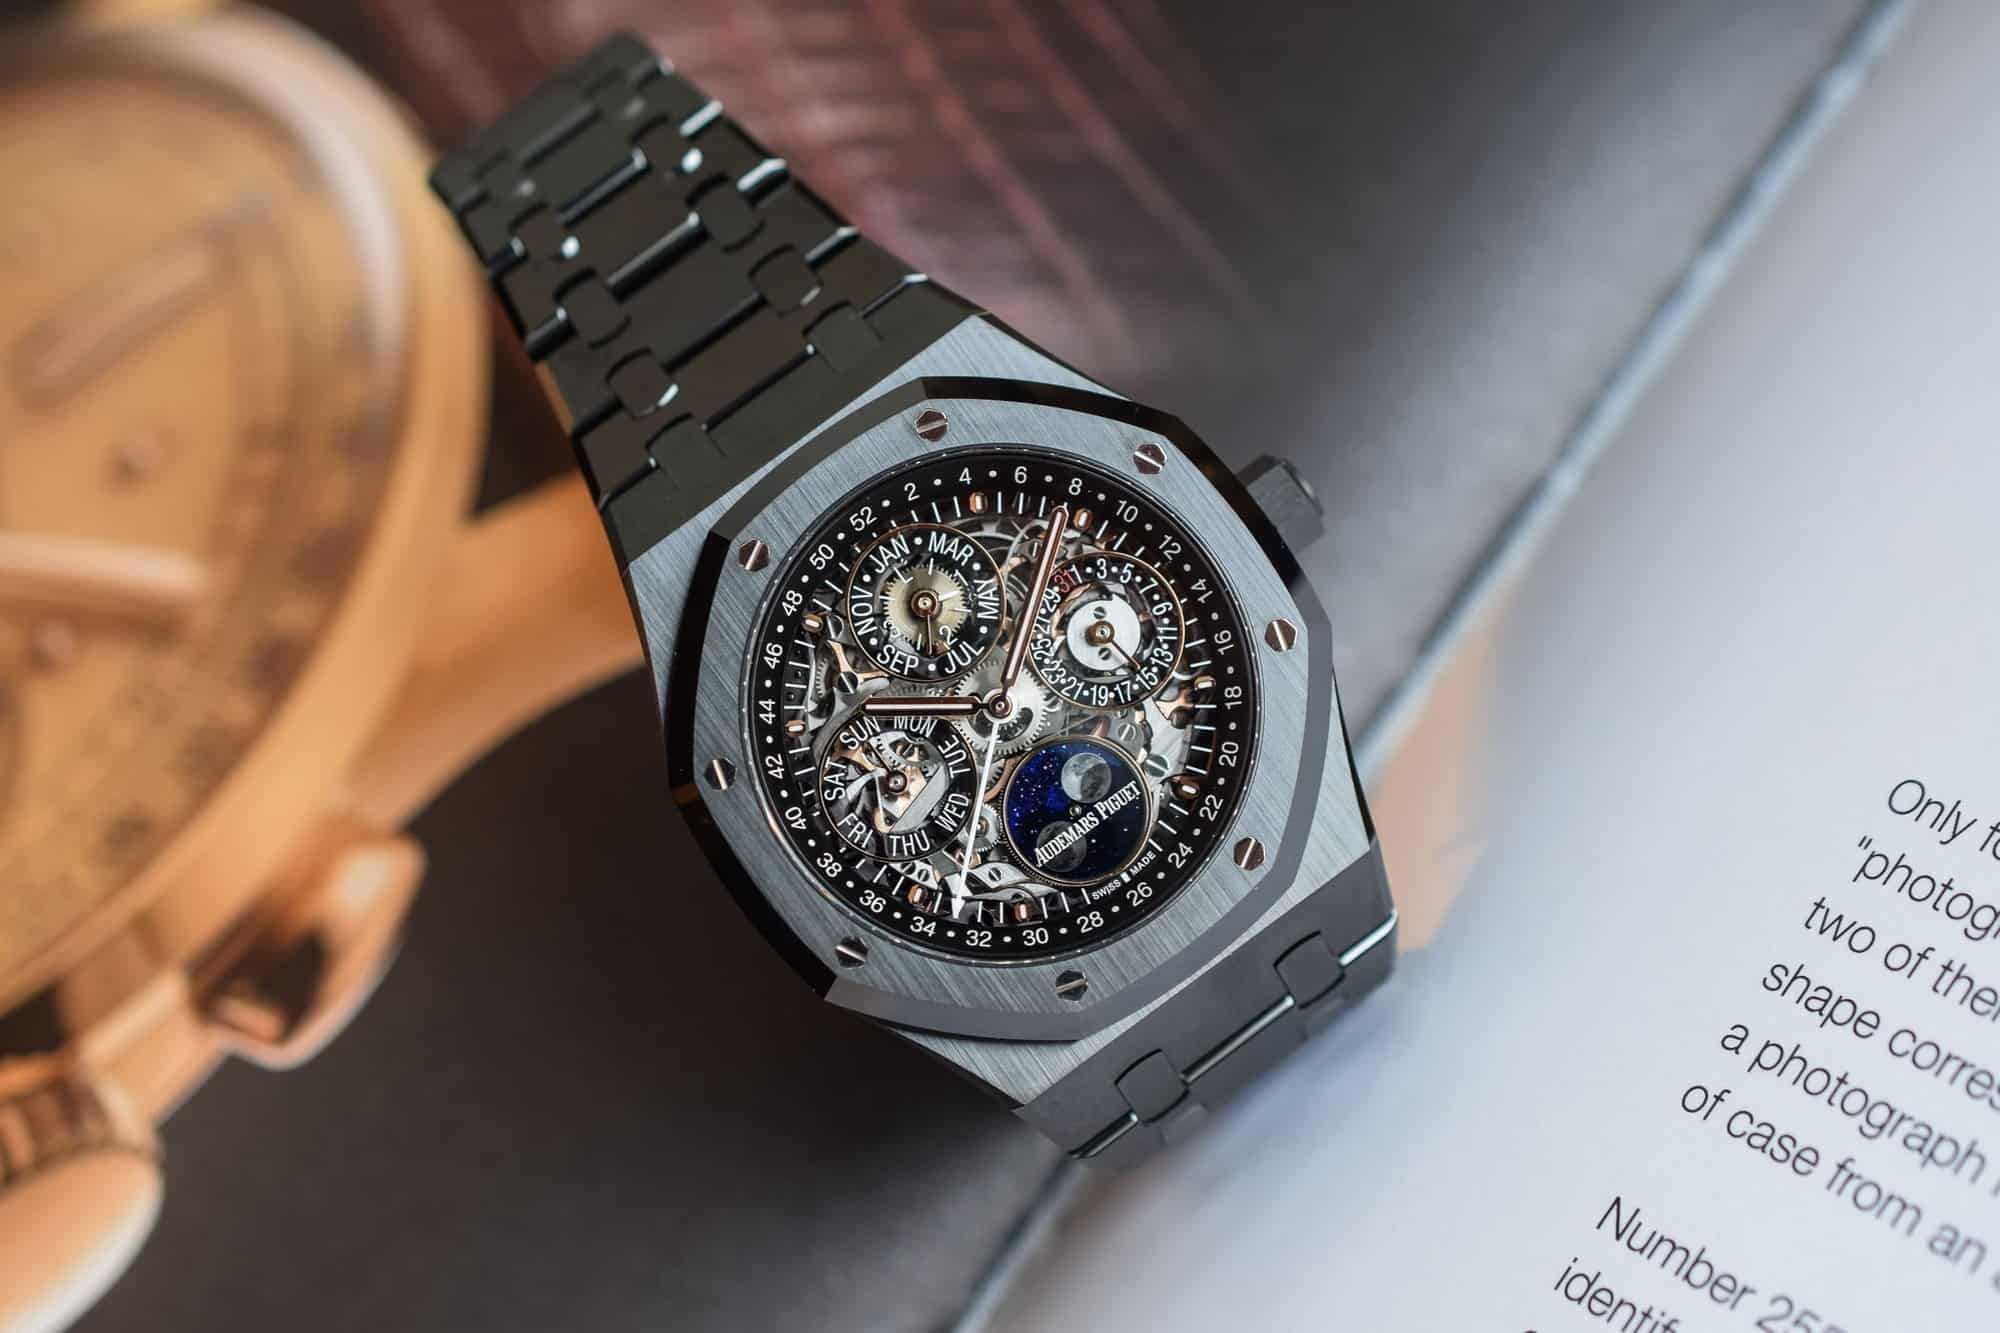 Audemars Piguet Royal Oak: Perpetual Calendar Openworked Black Ceramic Horloge